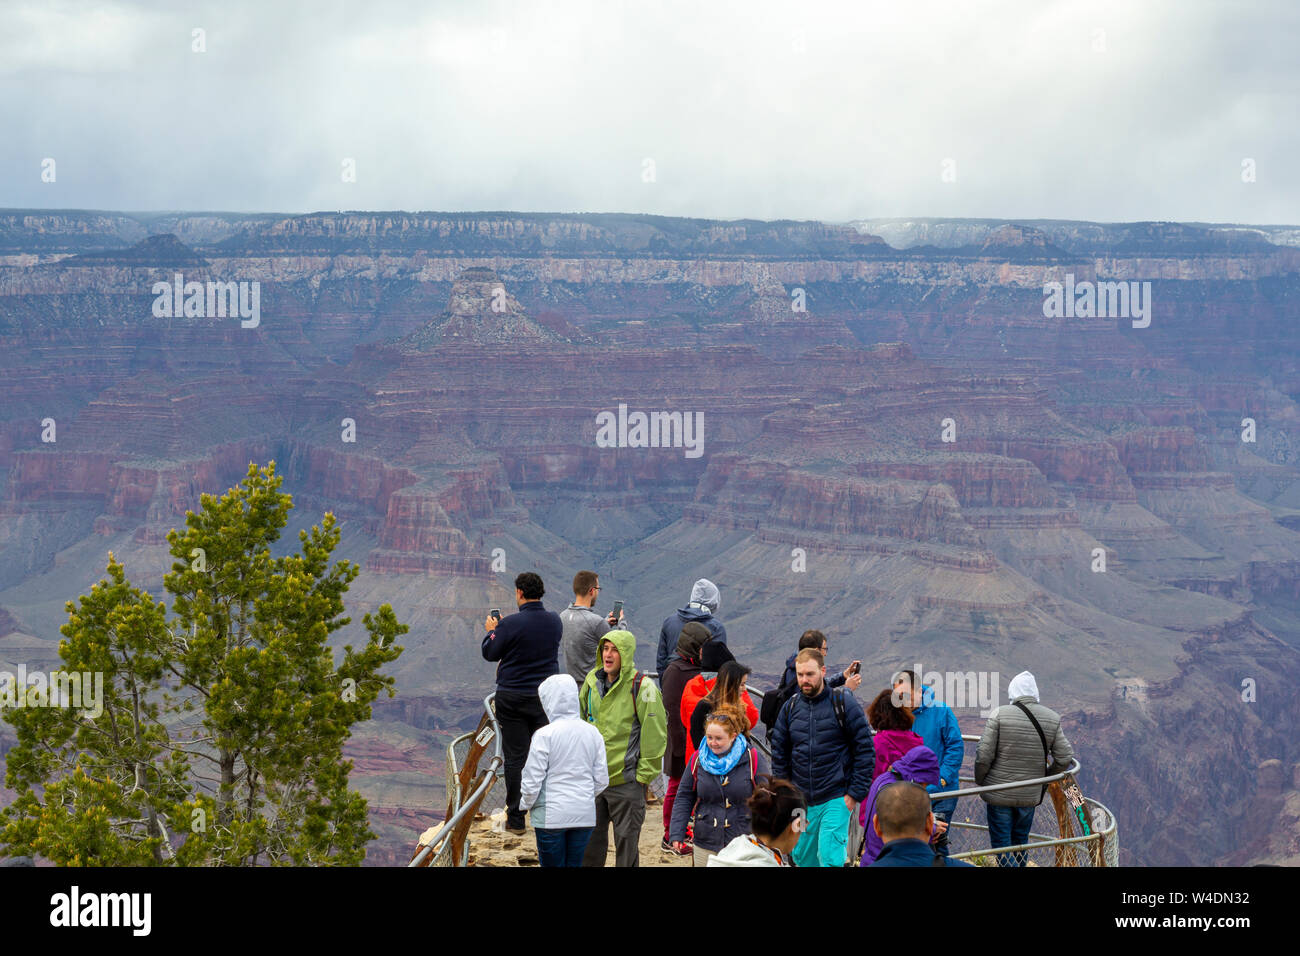 People at a scenic lookout with great views in the Grand Canyon National Park Stock Photo